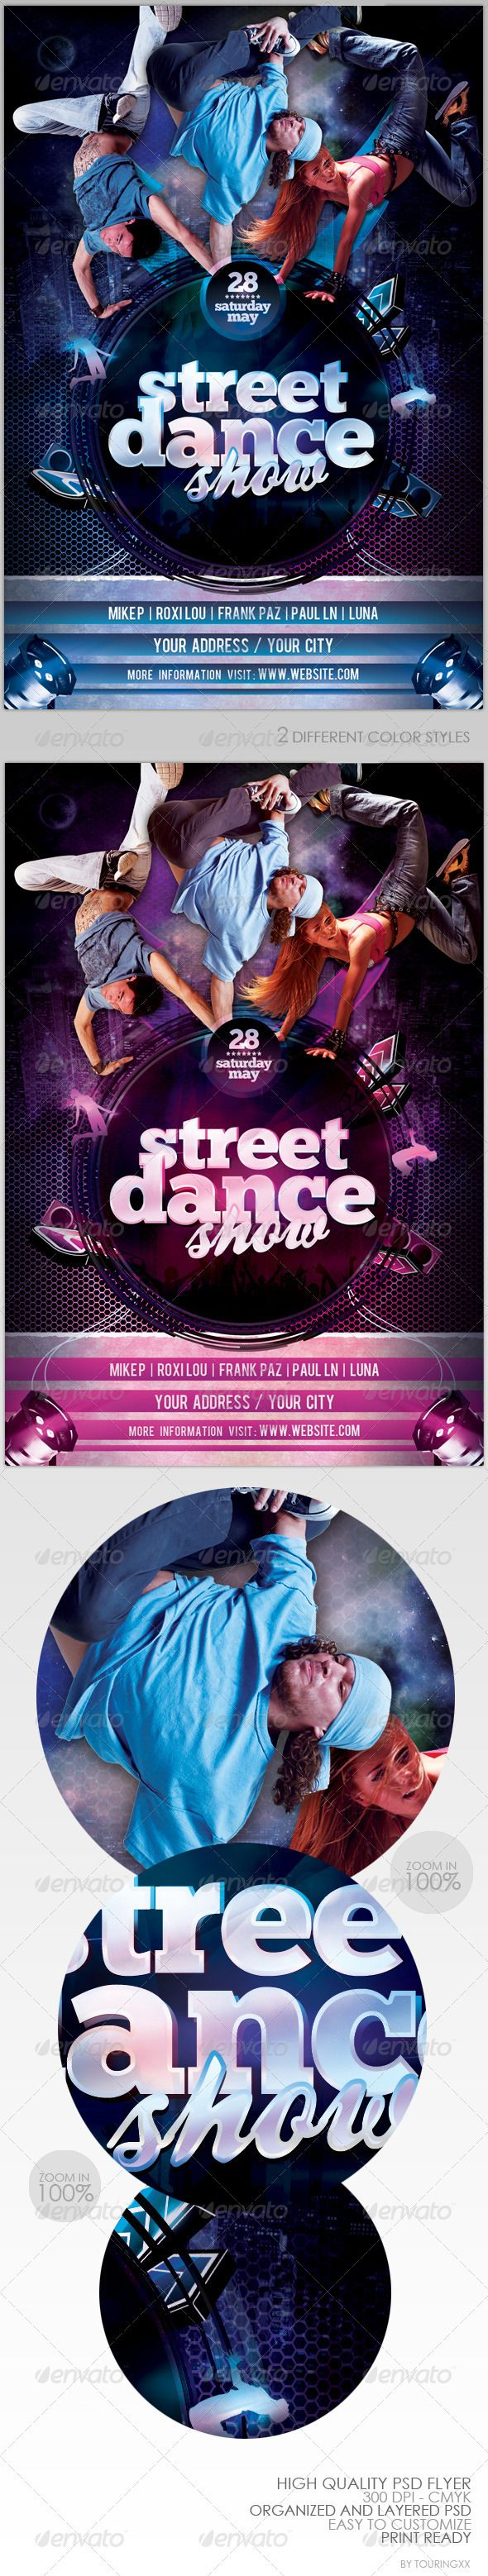 Poster design 101 - Find This Pin And More On 101 Dance